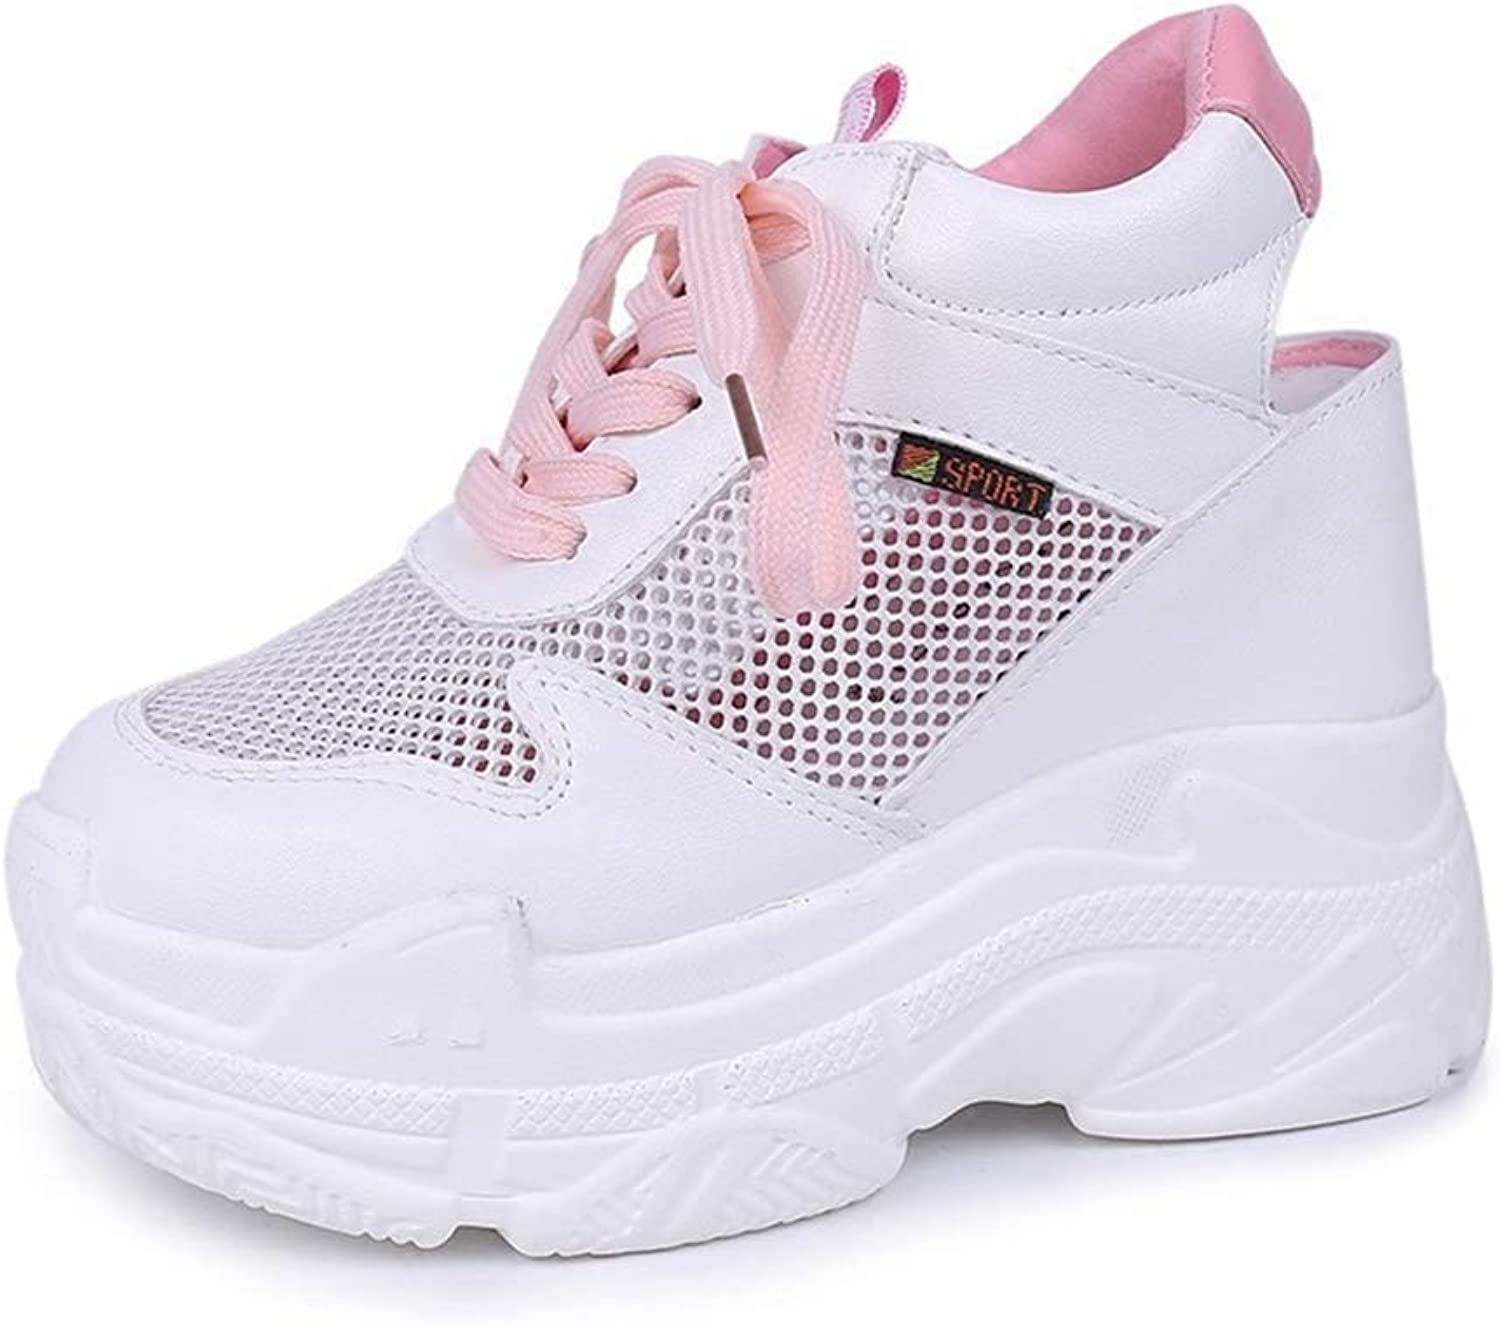 Hoxekle Casual shoes Women Air Mesh Breathable Platform Wedge Heels shoes 12cm Summer Sneakers